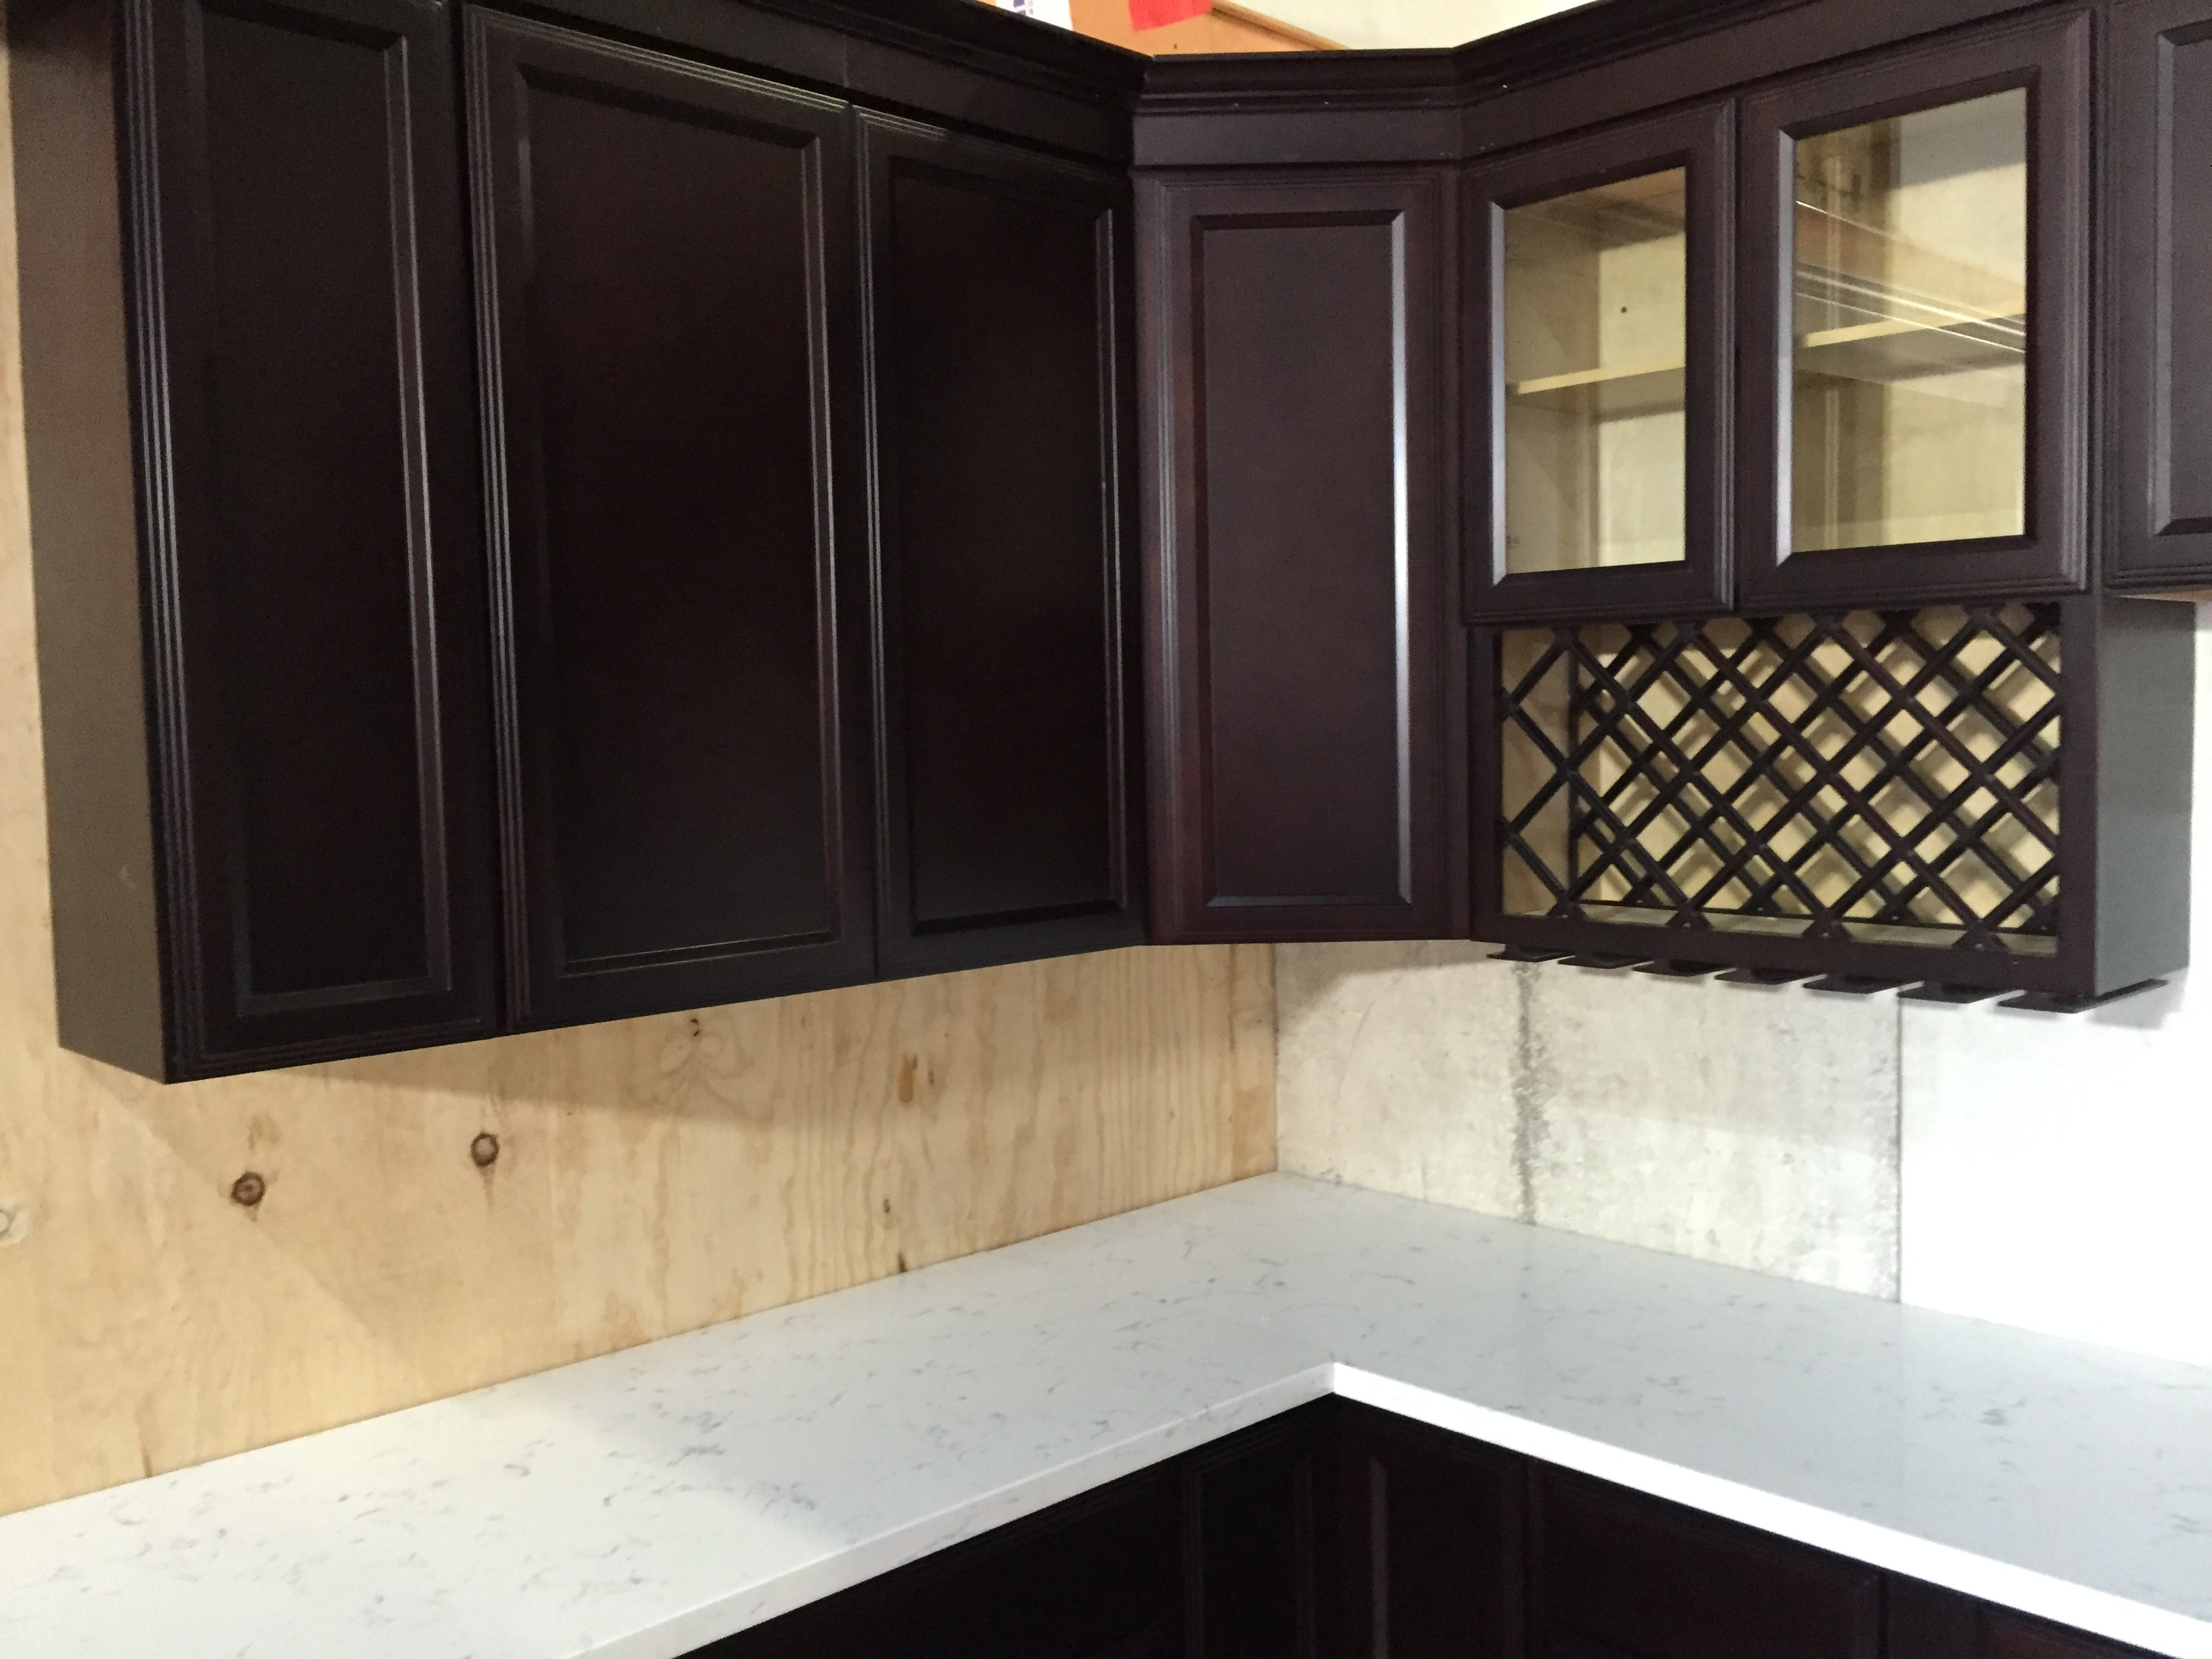 Coffee Color Kitchen Cabinets Espresso Colored Recessed Panel Kitchen Cabinets